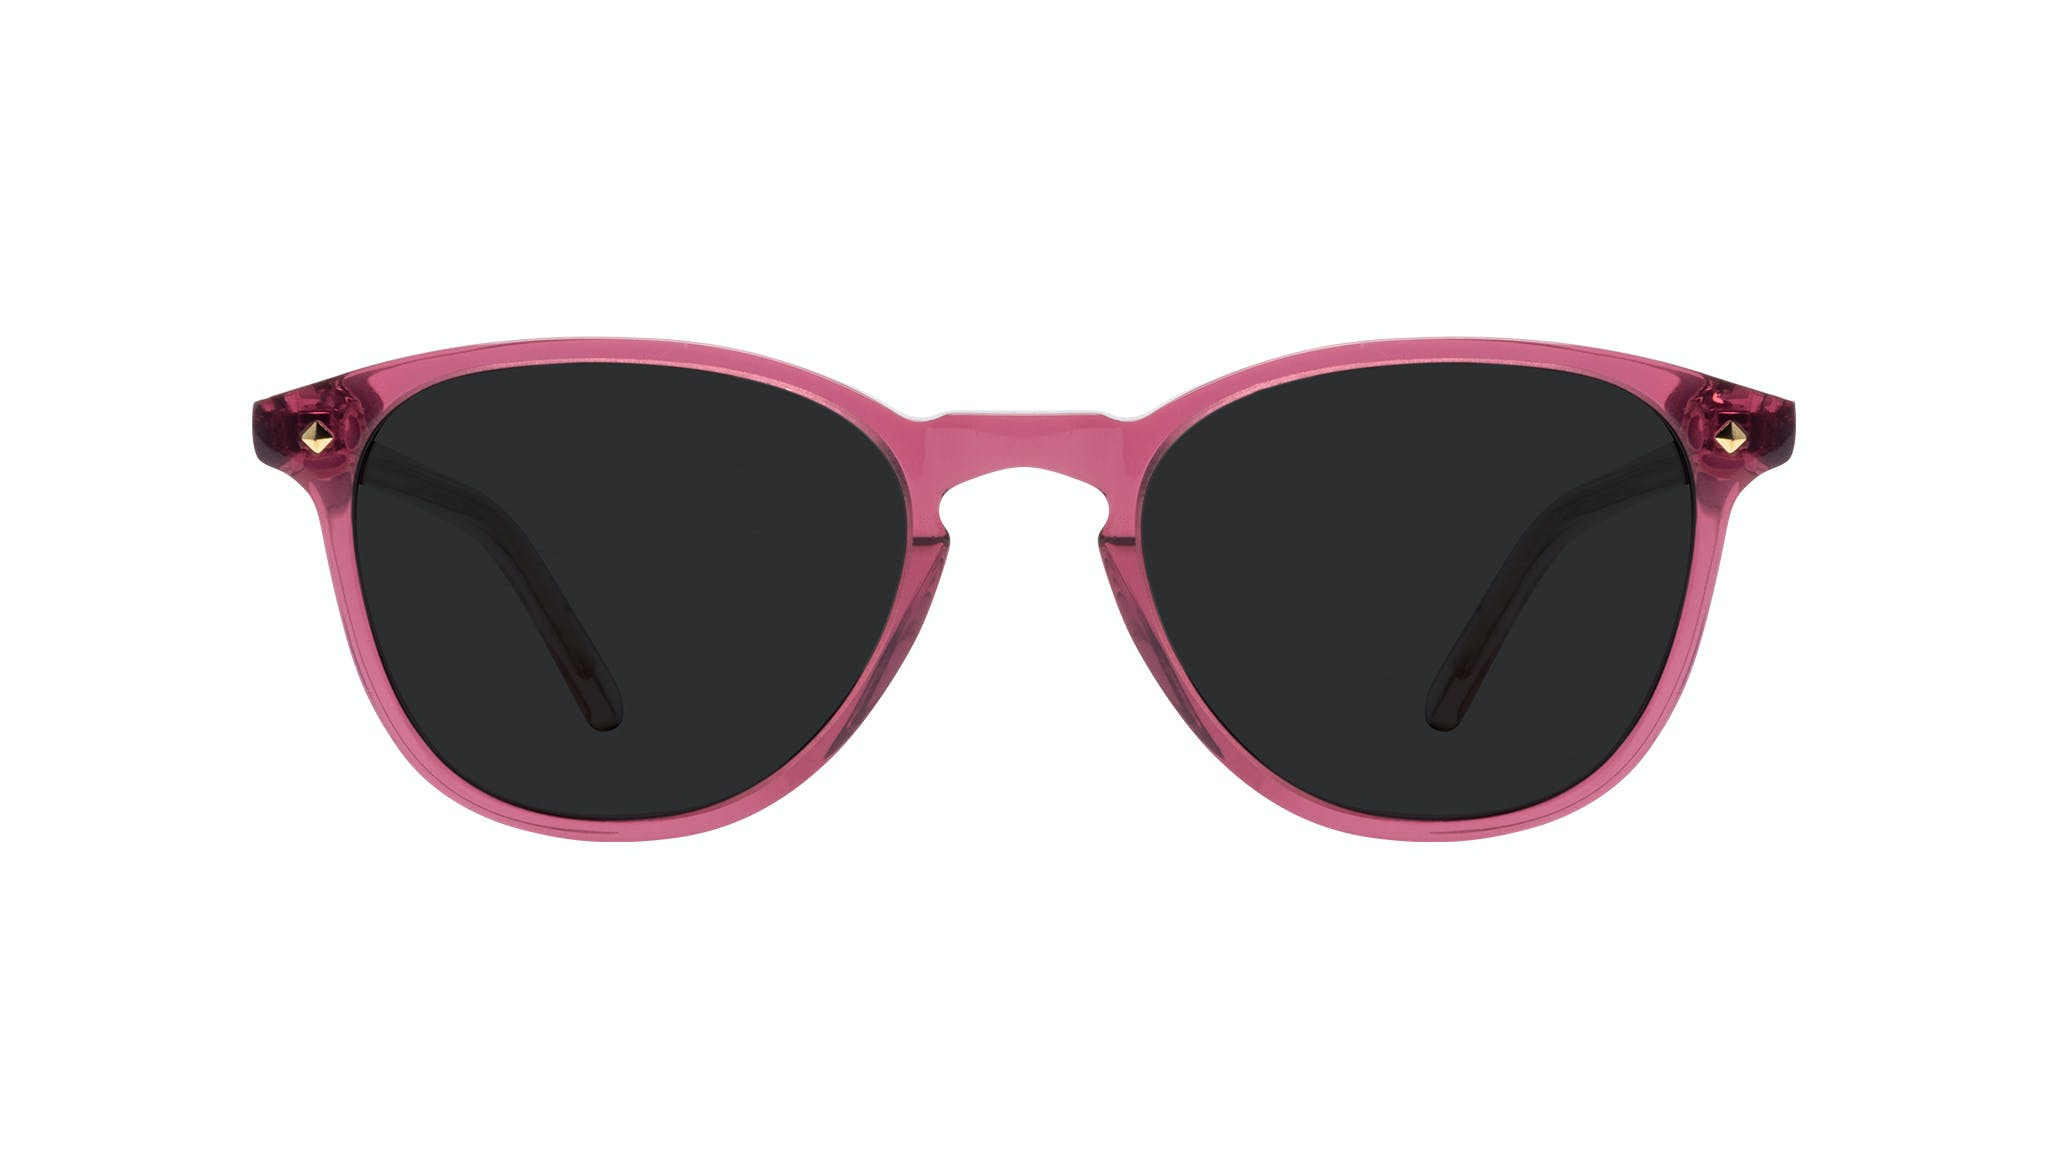 Affordable Fashion Glasses Round Sunglasses Women Crush Berry